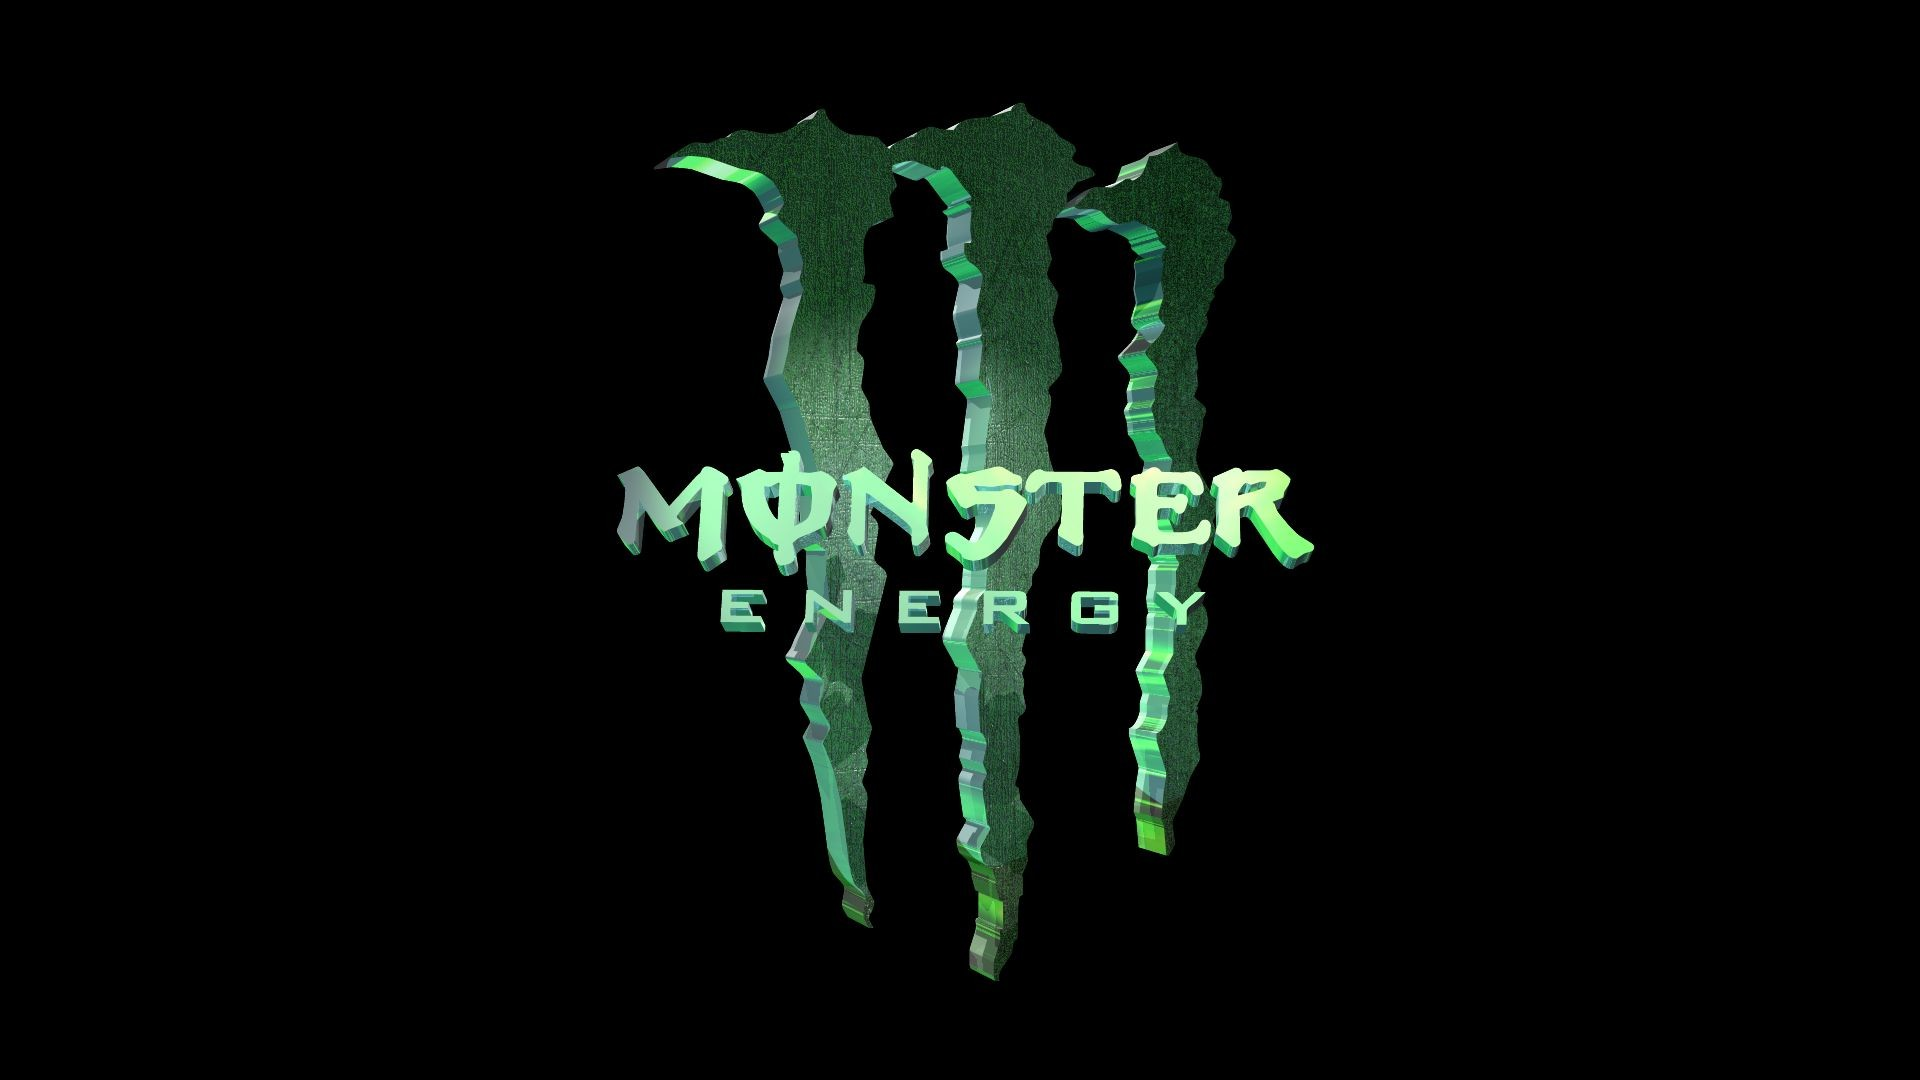 17 Best images about Logos on Pinterest | Logos, Monster energy | Beautiful  Wallpapers | Pinterest | Monsters and Wallpaper